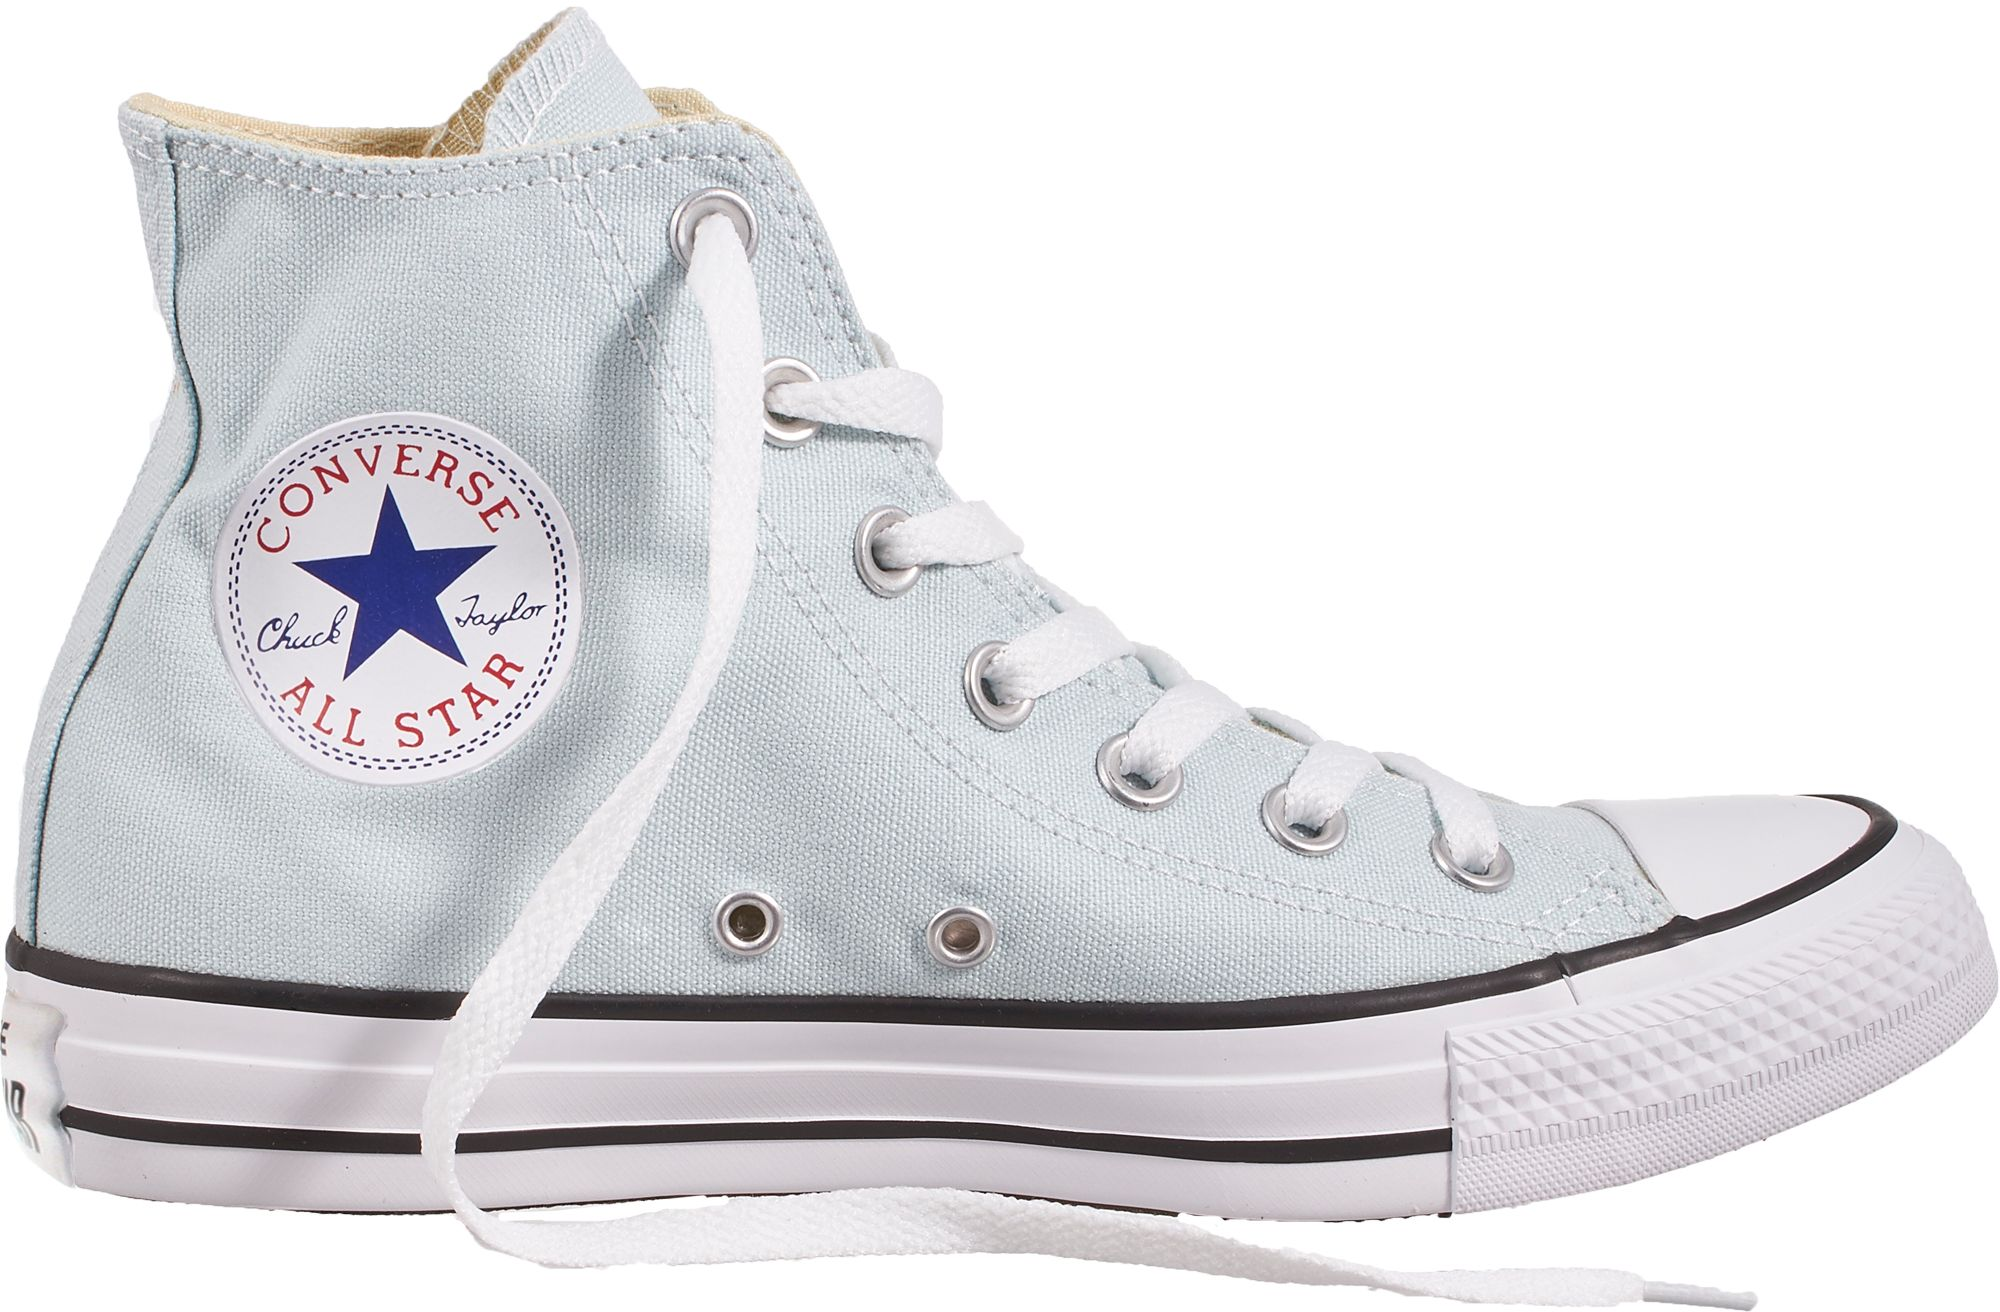 Converse Chuck Taylor All Star Classic HiTop Shoes 000 000  000  noImageFound